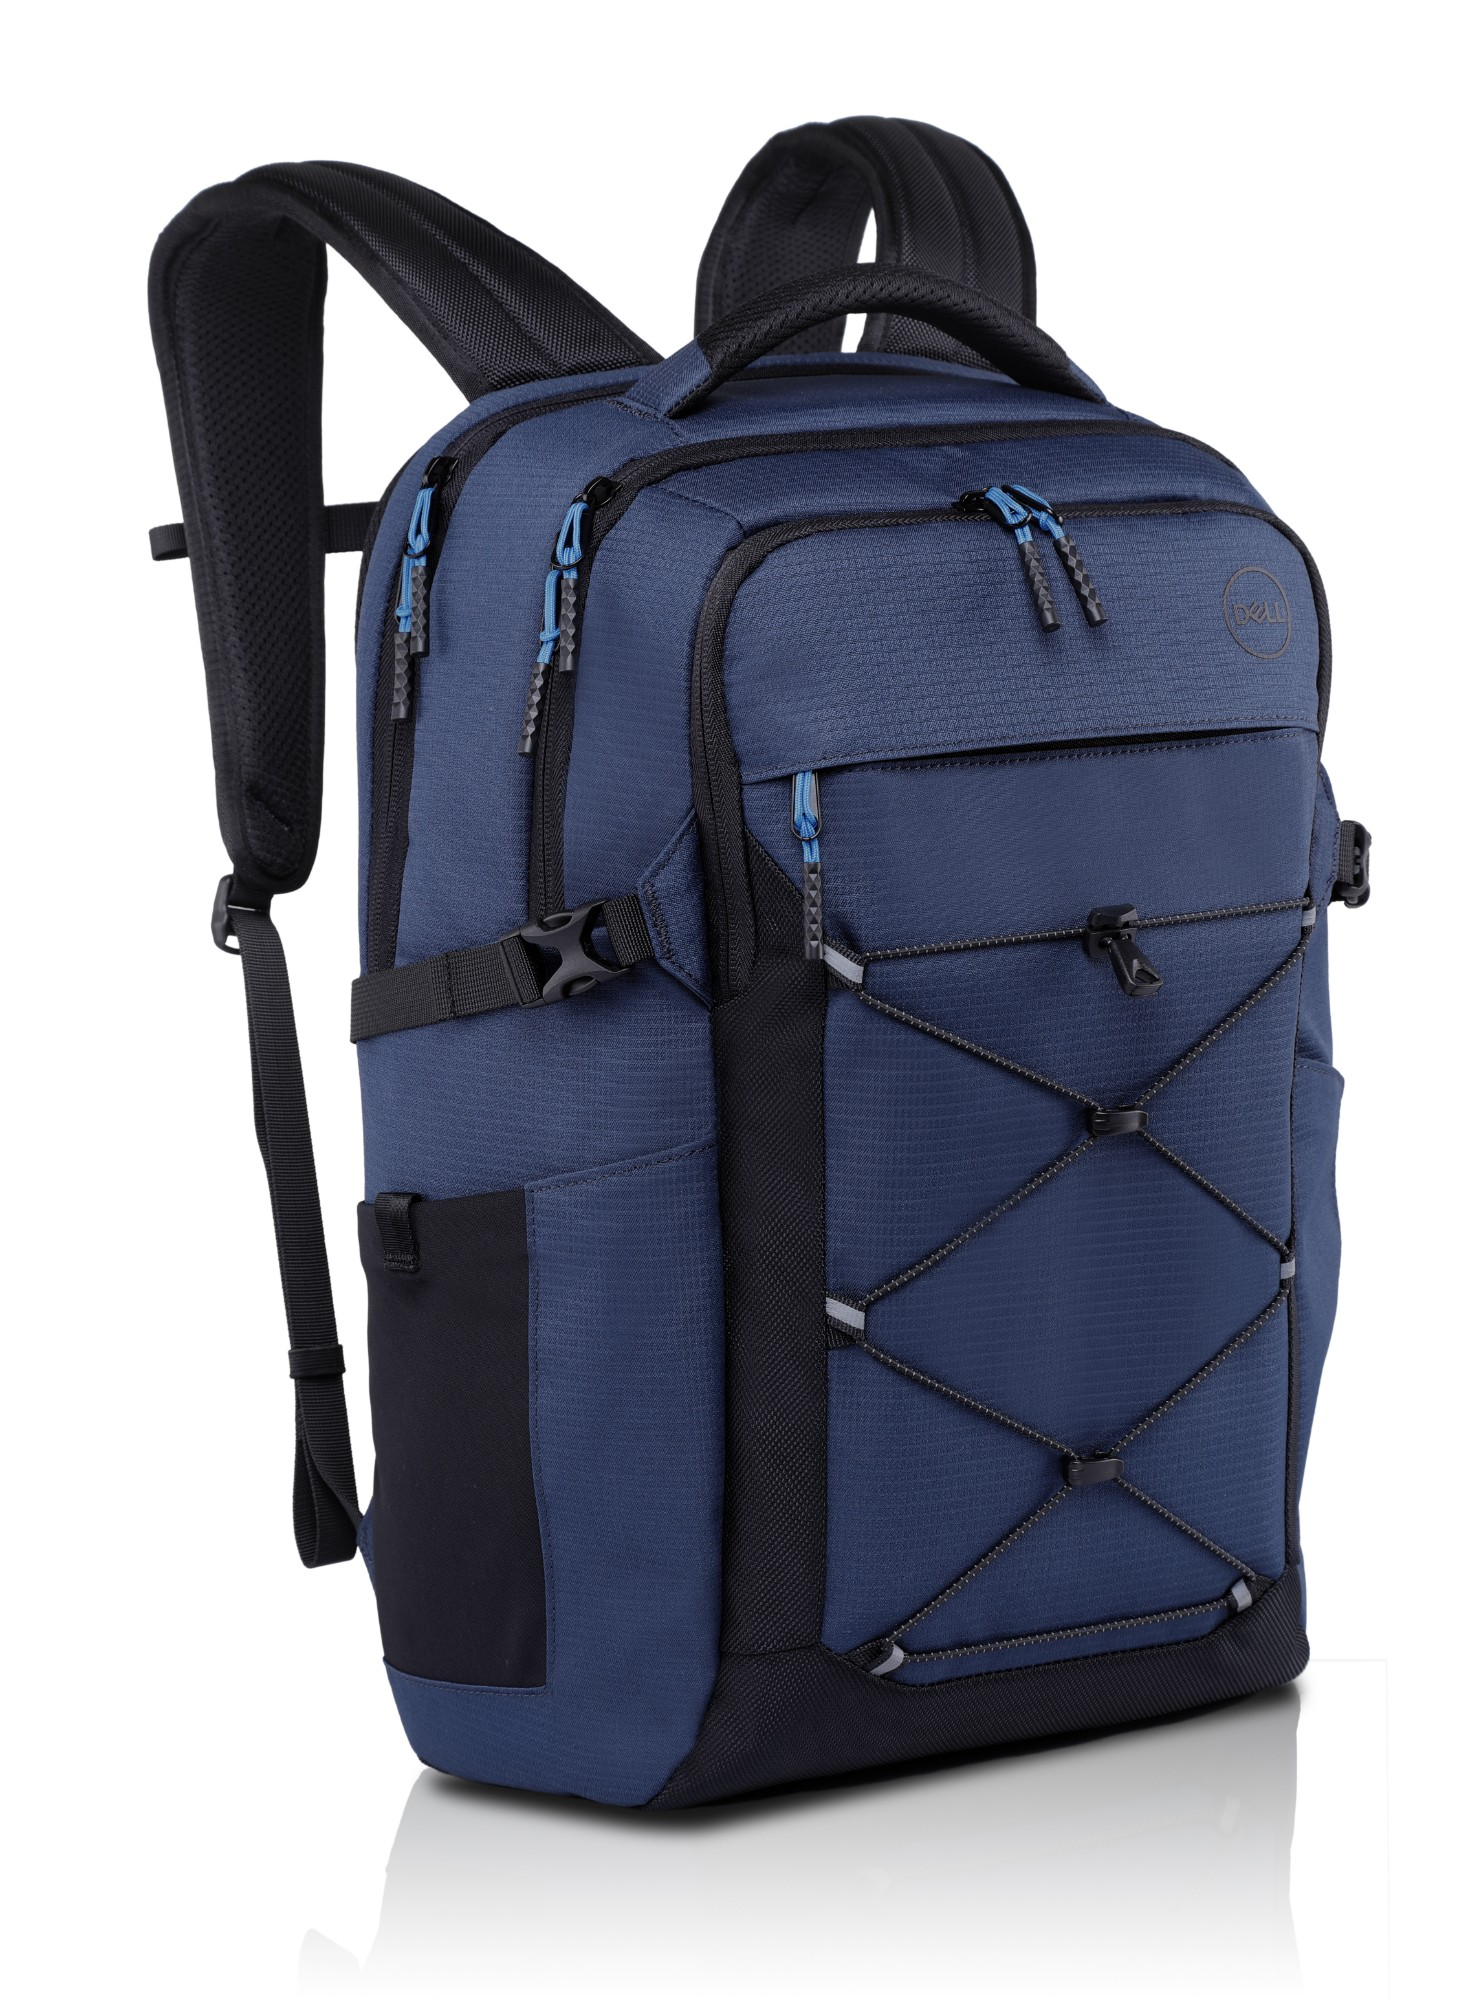 031a9bf9a0 ... DELL Energy Backpack 15 notebook case 38.1 cm (15